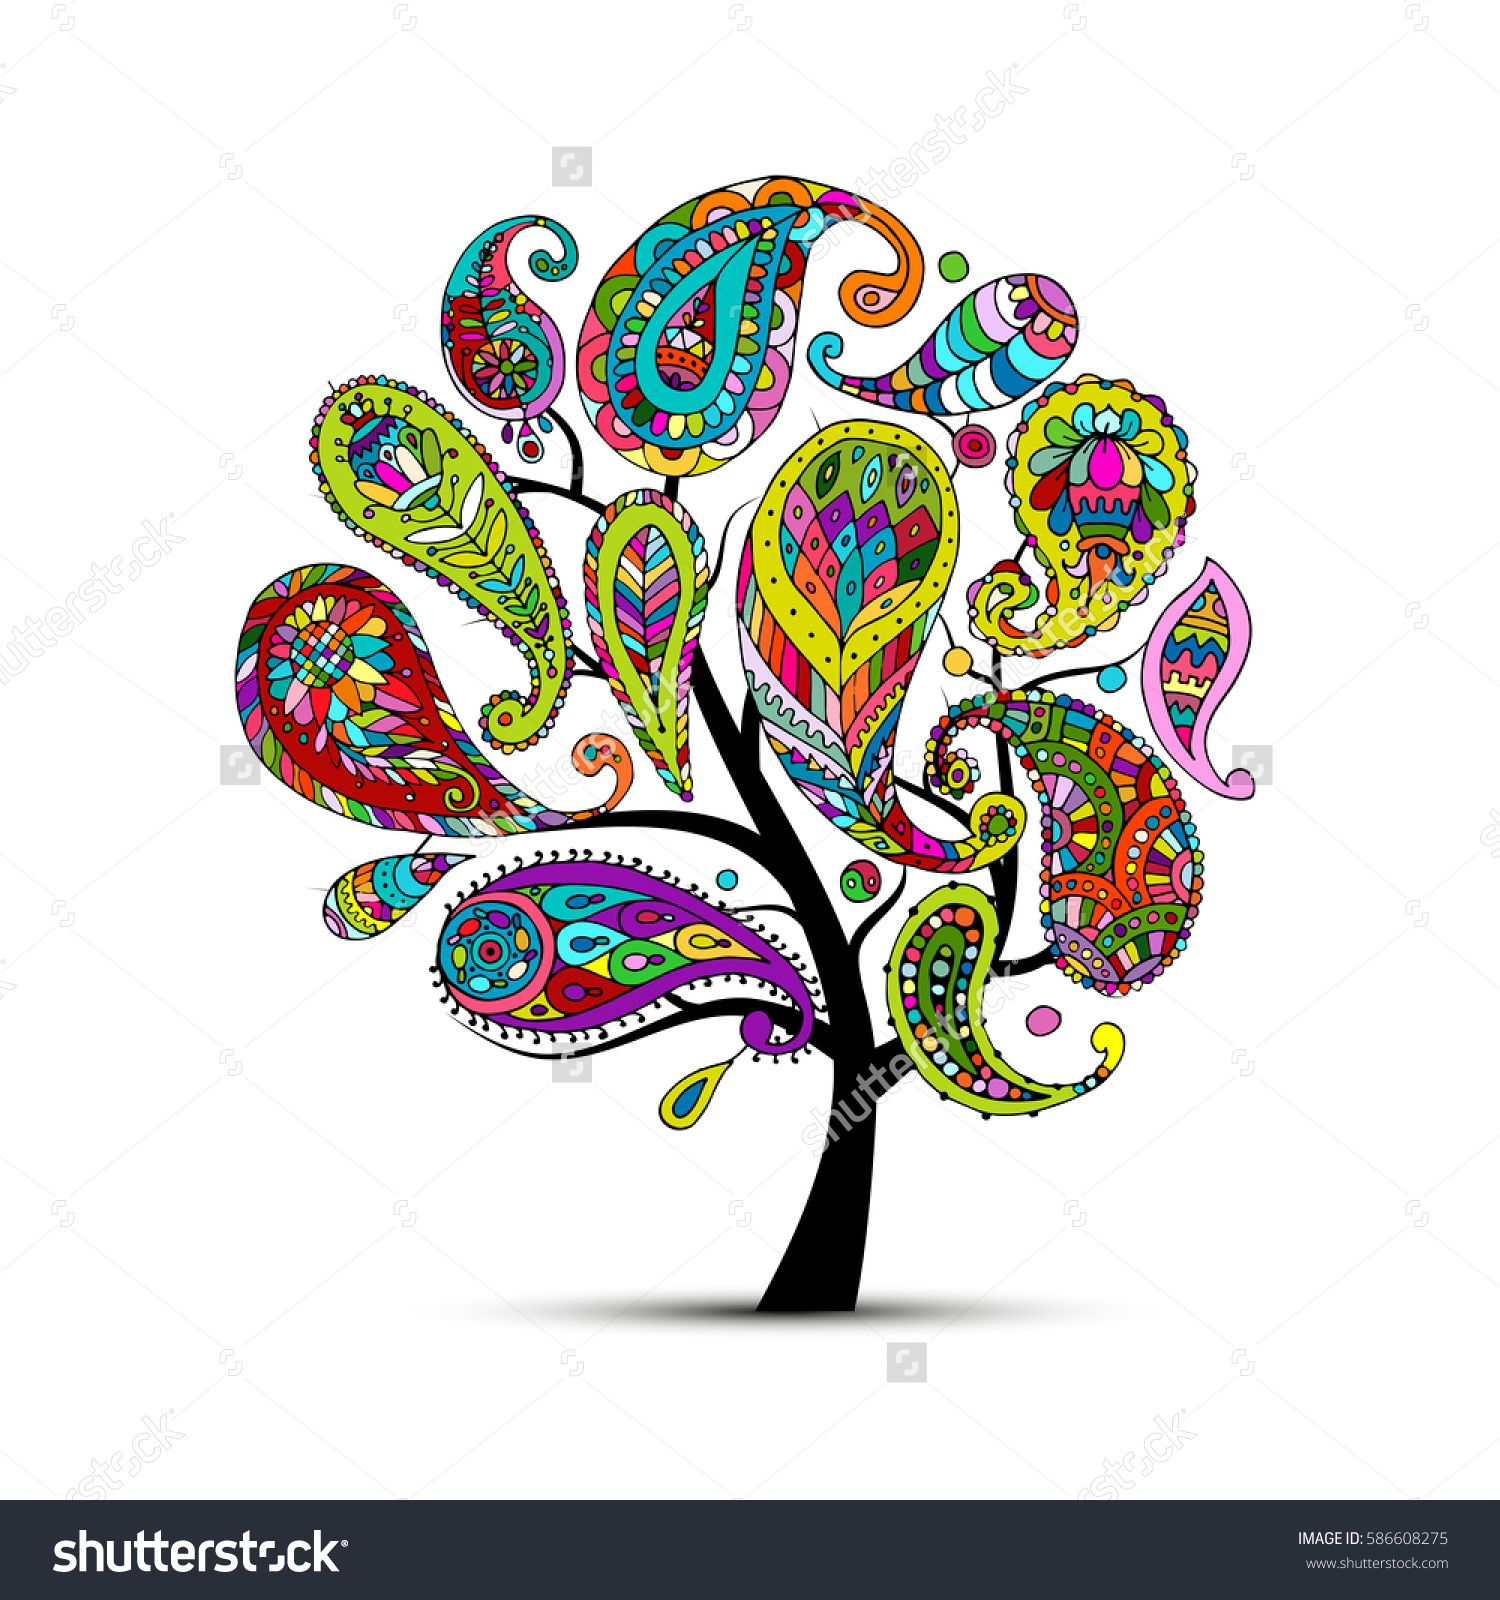 Paisley Ornament, Art Tree, Sketch For Your Design Vector Illustration